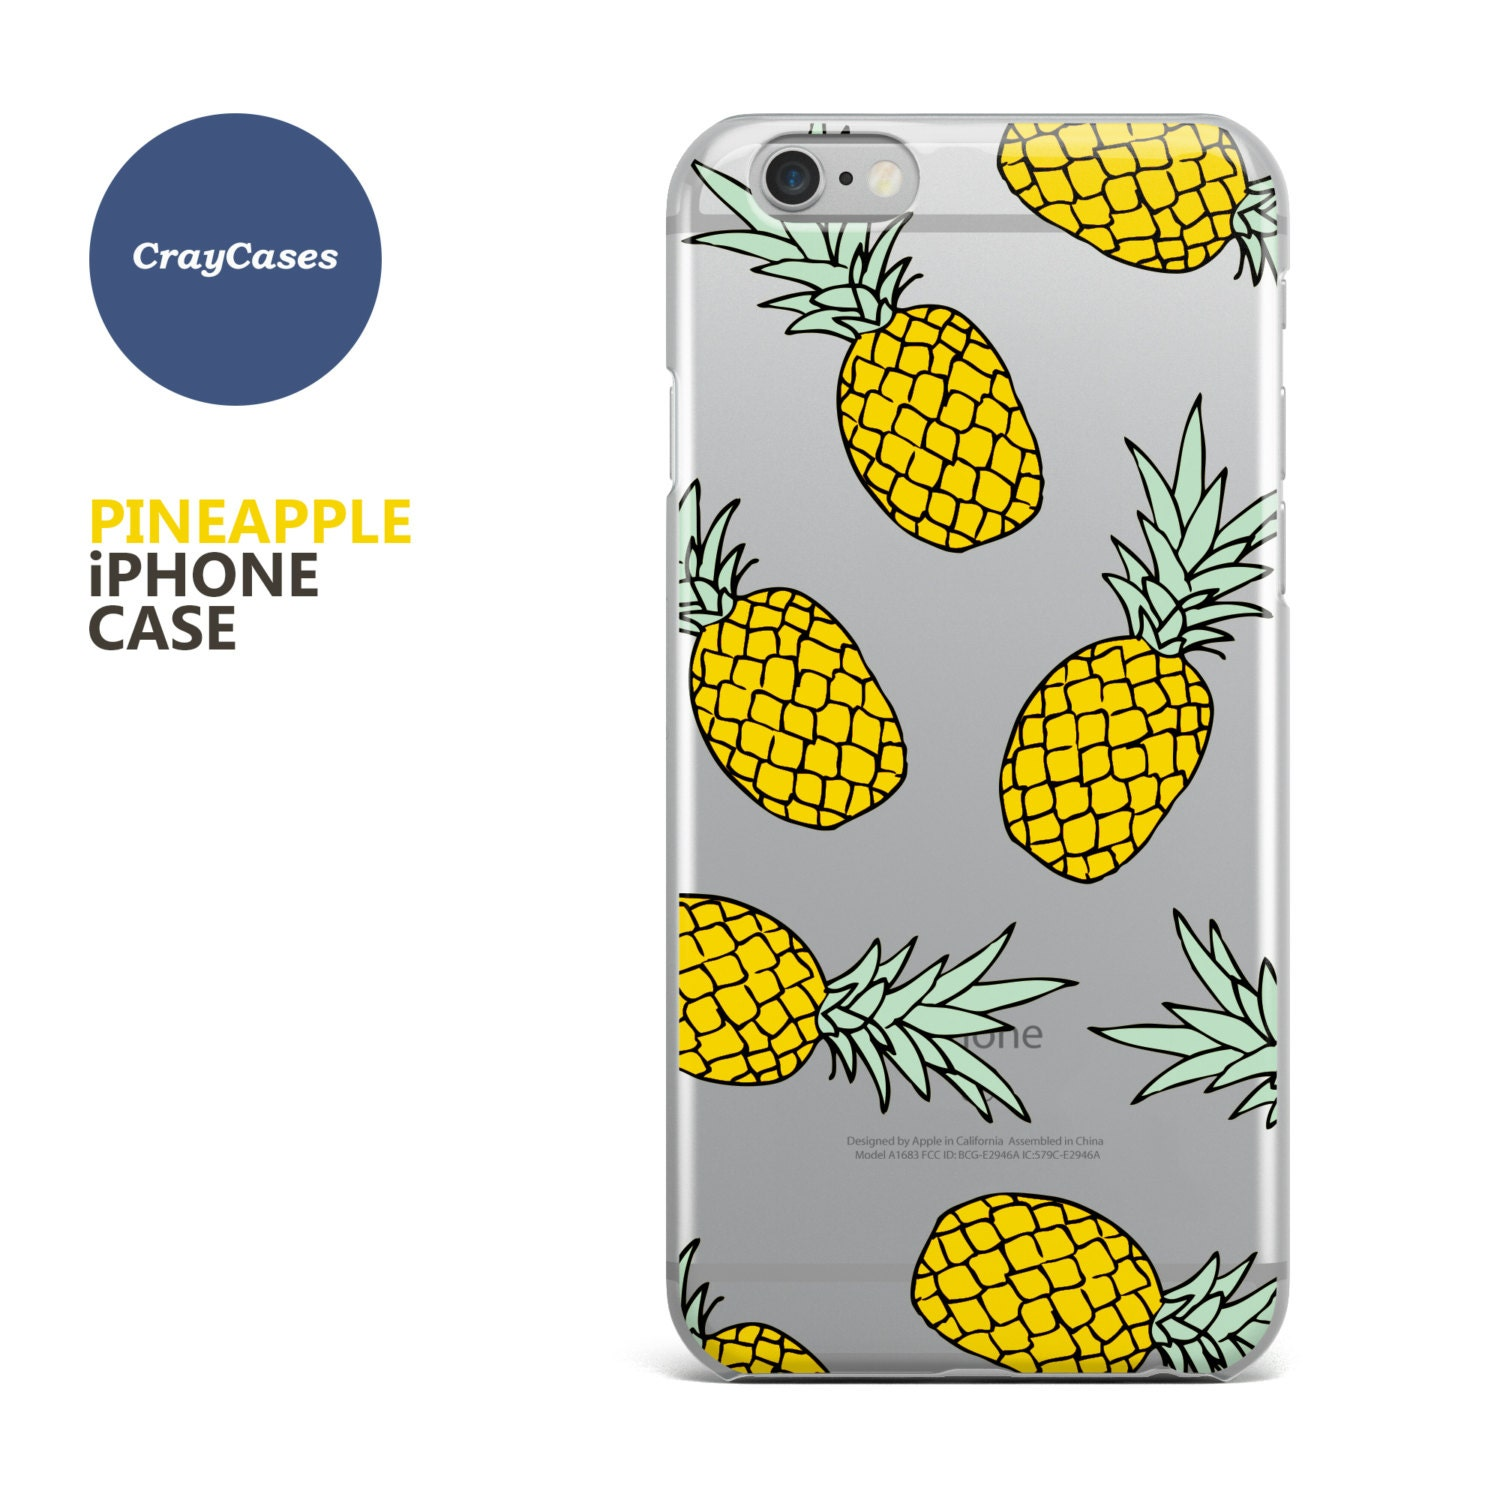 Clear Pineapple iPhone 7 Case Pineapples iPhone 6 Case Pineapple iPhone 6s Plus Case Pineapple iPhone 6 Plus Case (Shipped From UK)